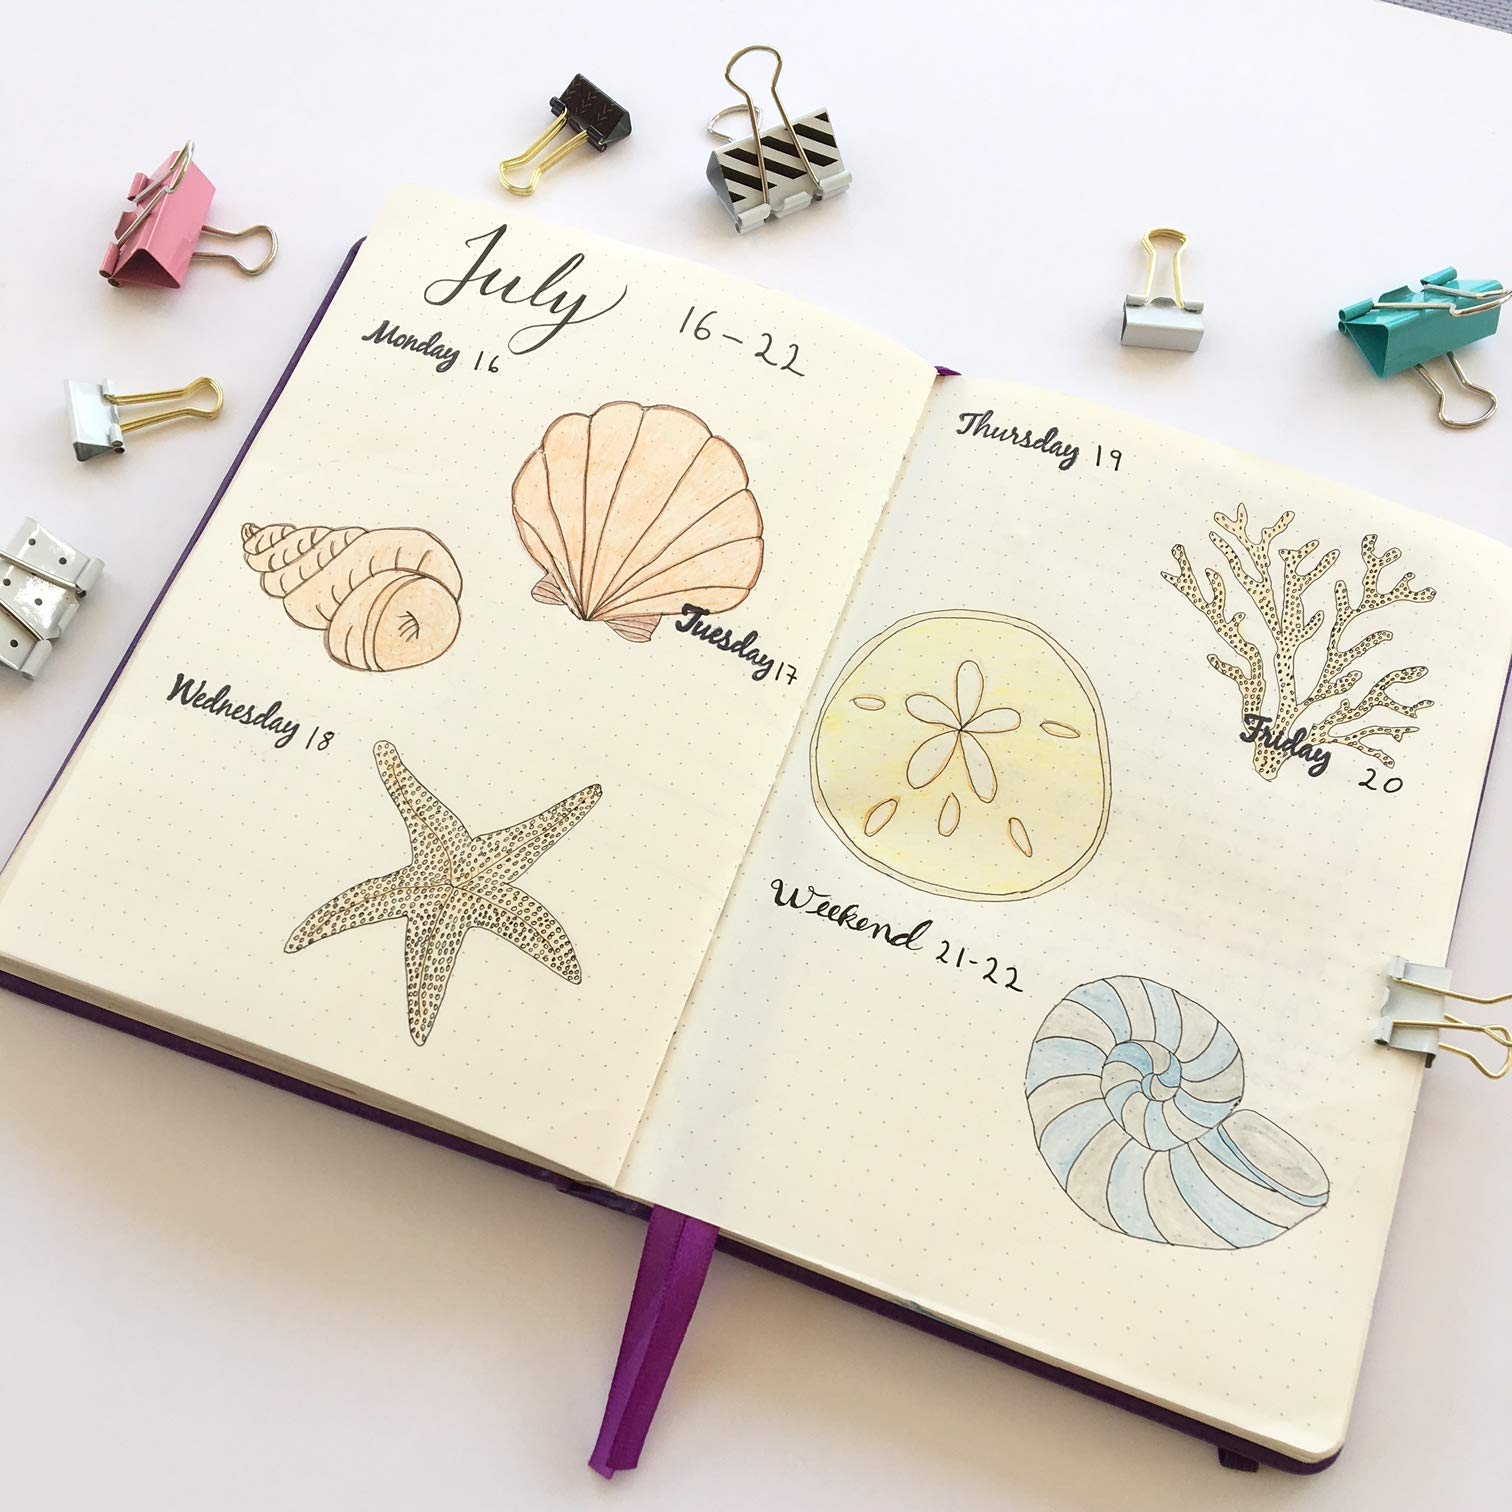 Scrivwell Dotted A5 Hardcover Notebook - 240 Dotted Pages with Elastic Band, Two Ribbon Page Markers, 100 GSM Paper, Pocket Folder - Great for Bullet journaling (Purple) by Scrivwell (Image #5)